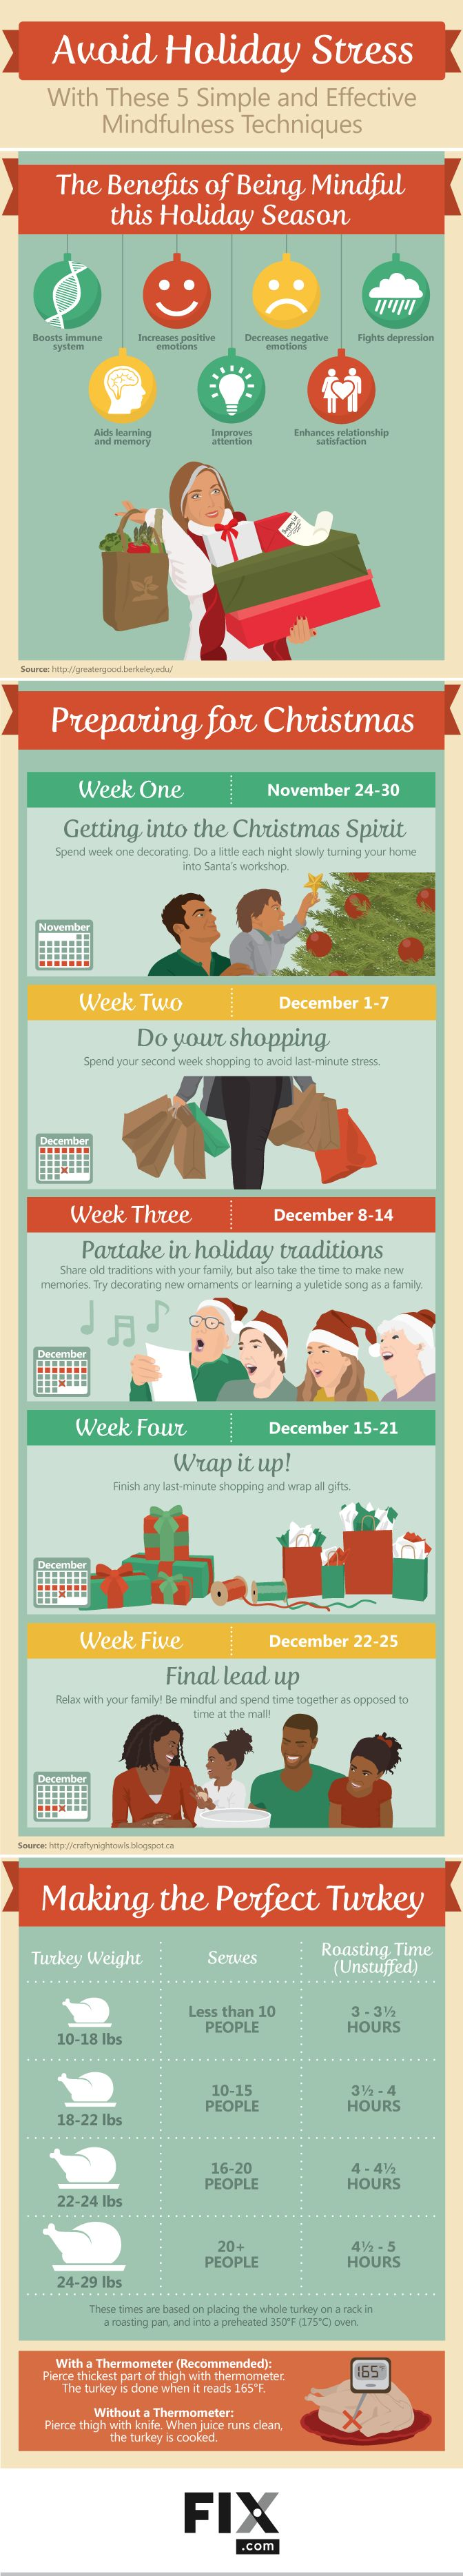 Avoid Holiday Stress: 5 Simple and Effective Mindfulness Techniques #Infographic…